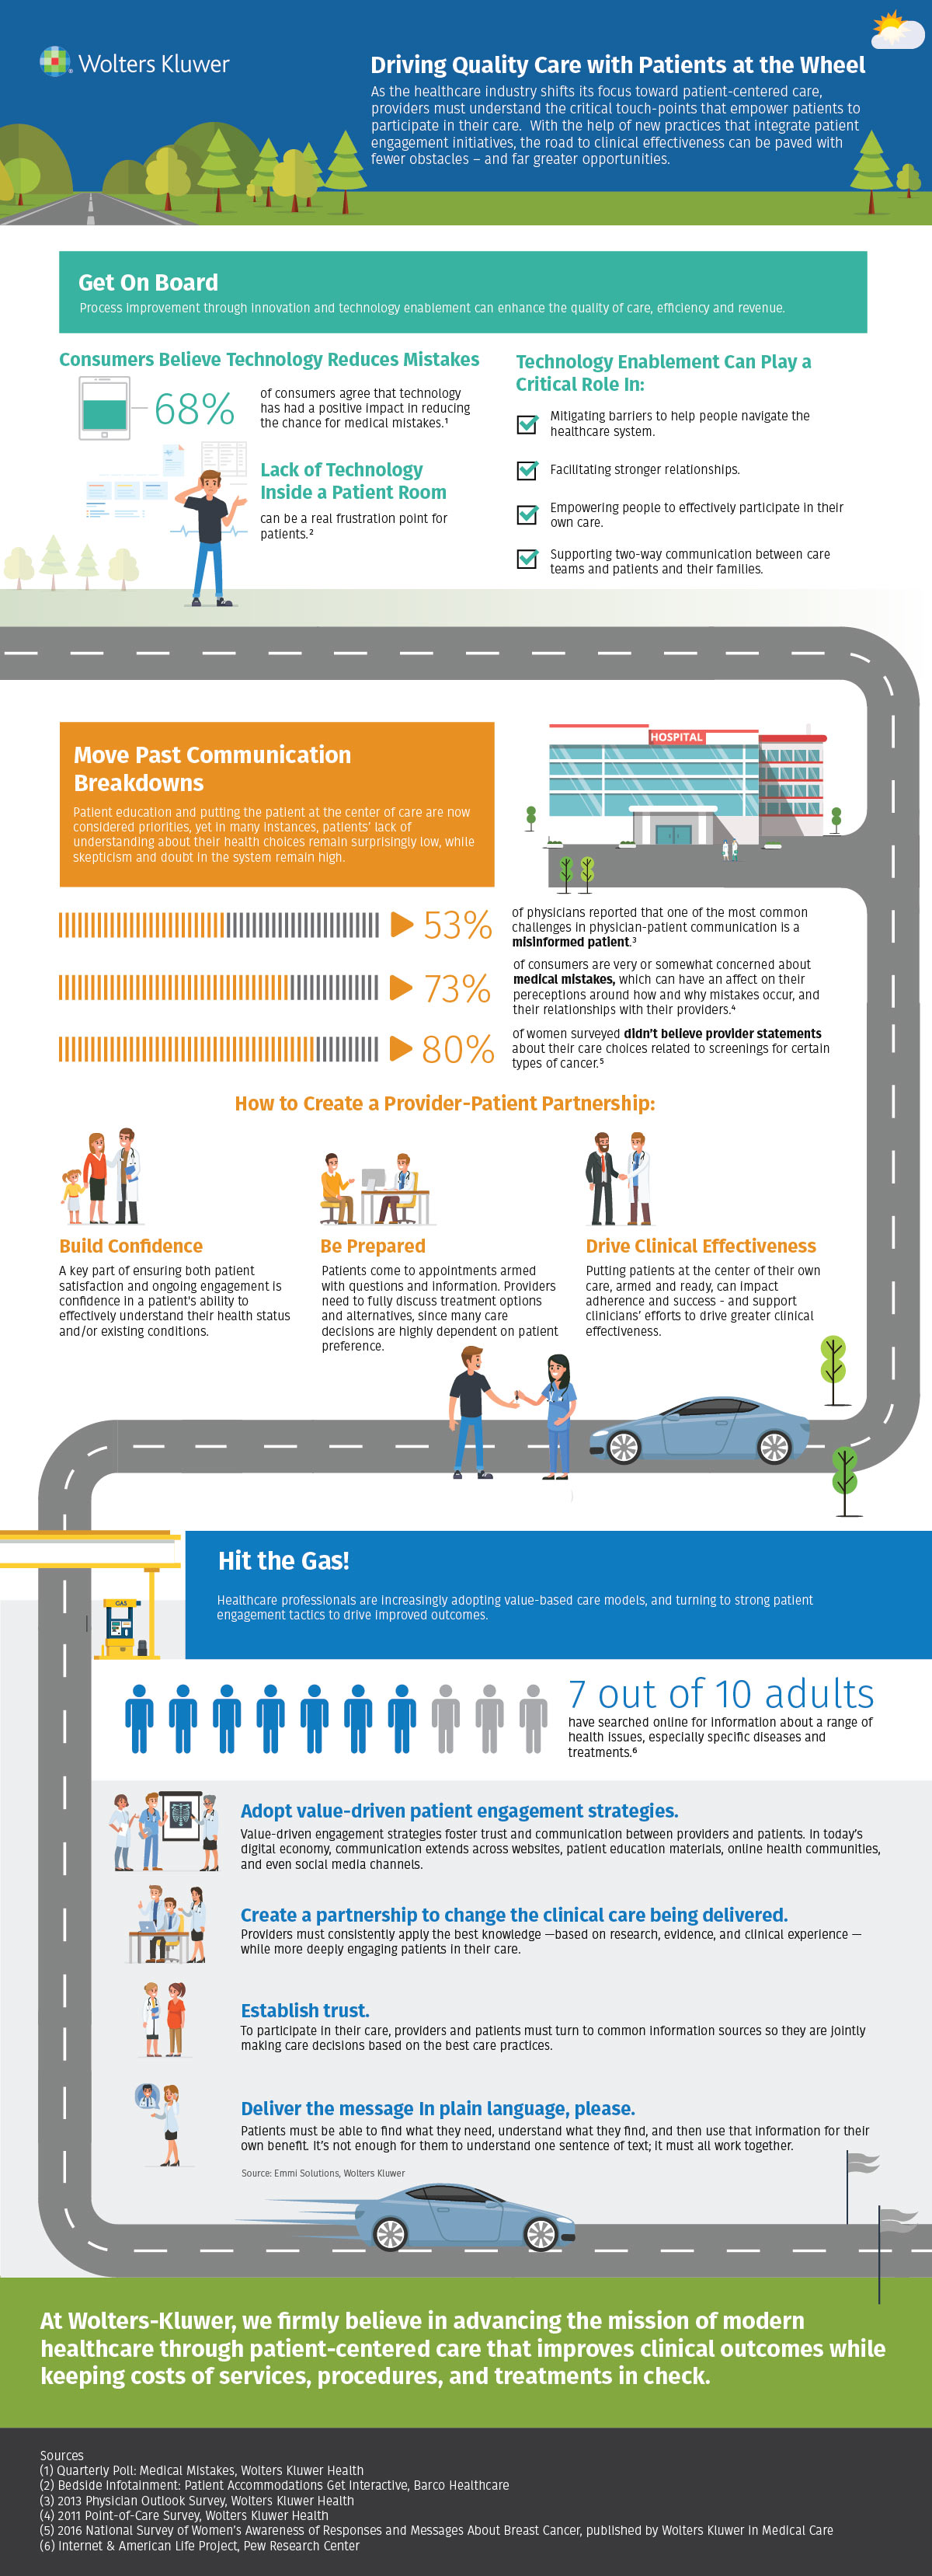 Driving quality care with patients at the wheel